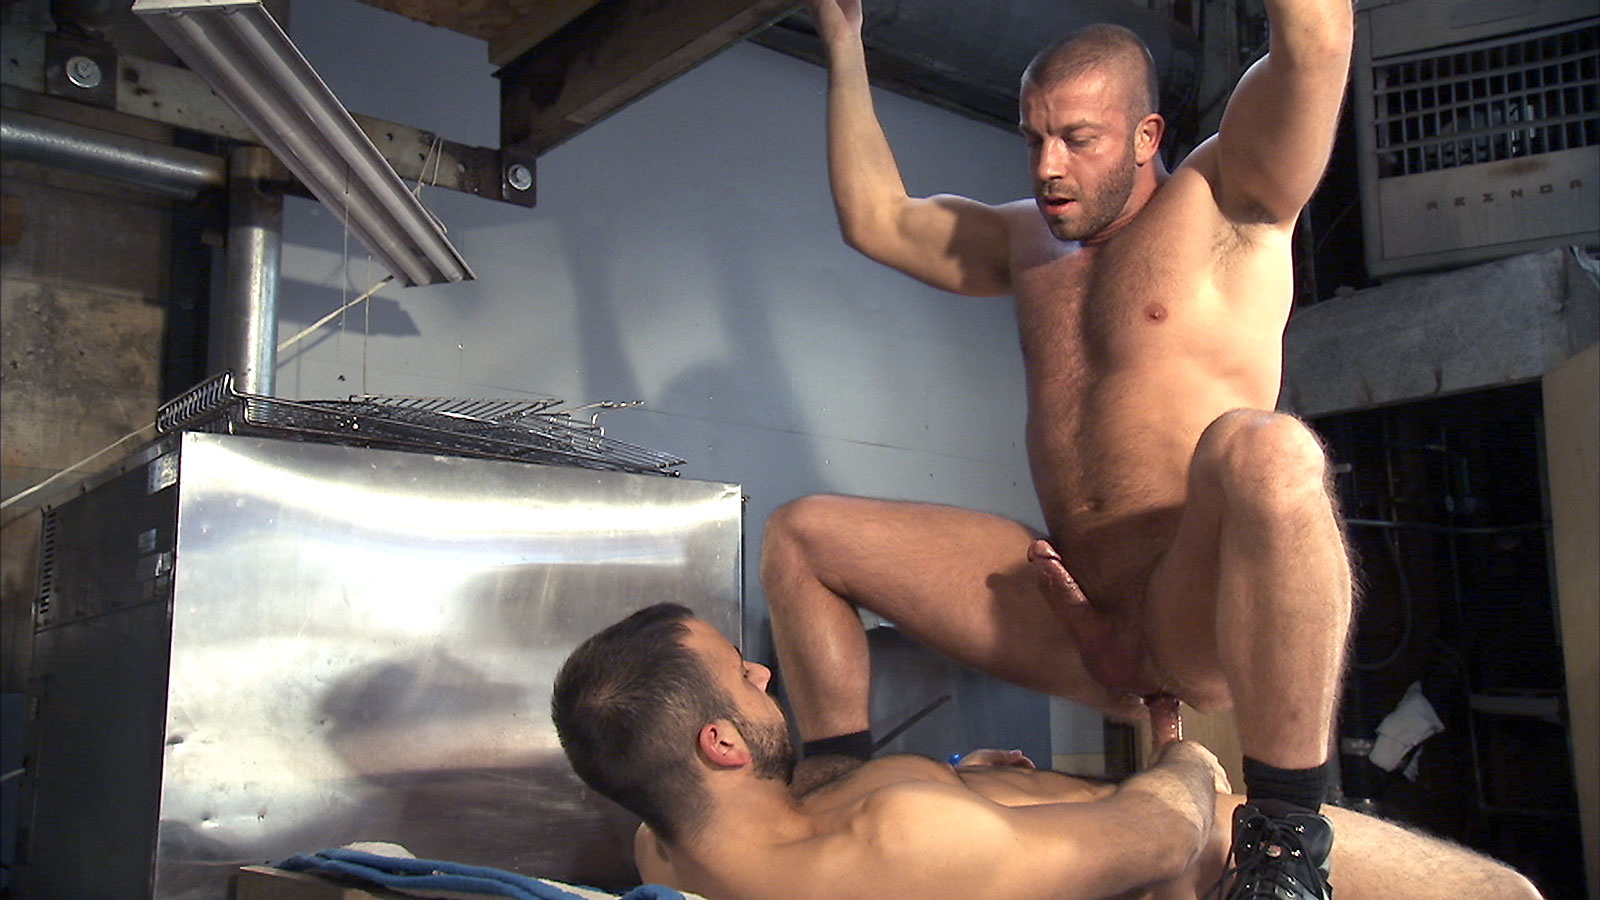 Home And Away Videos and Gay Porn Movies :: PornMD